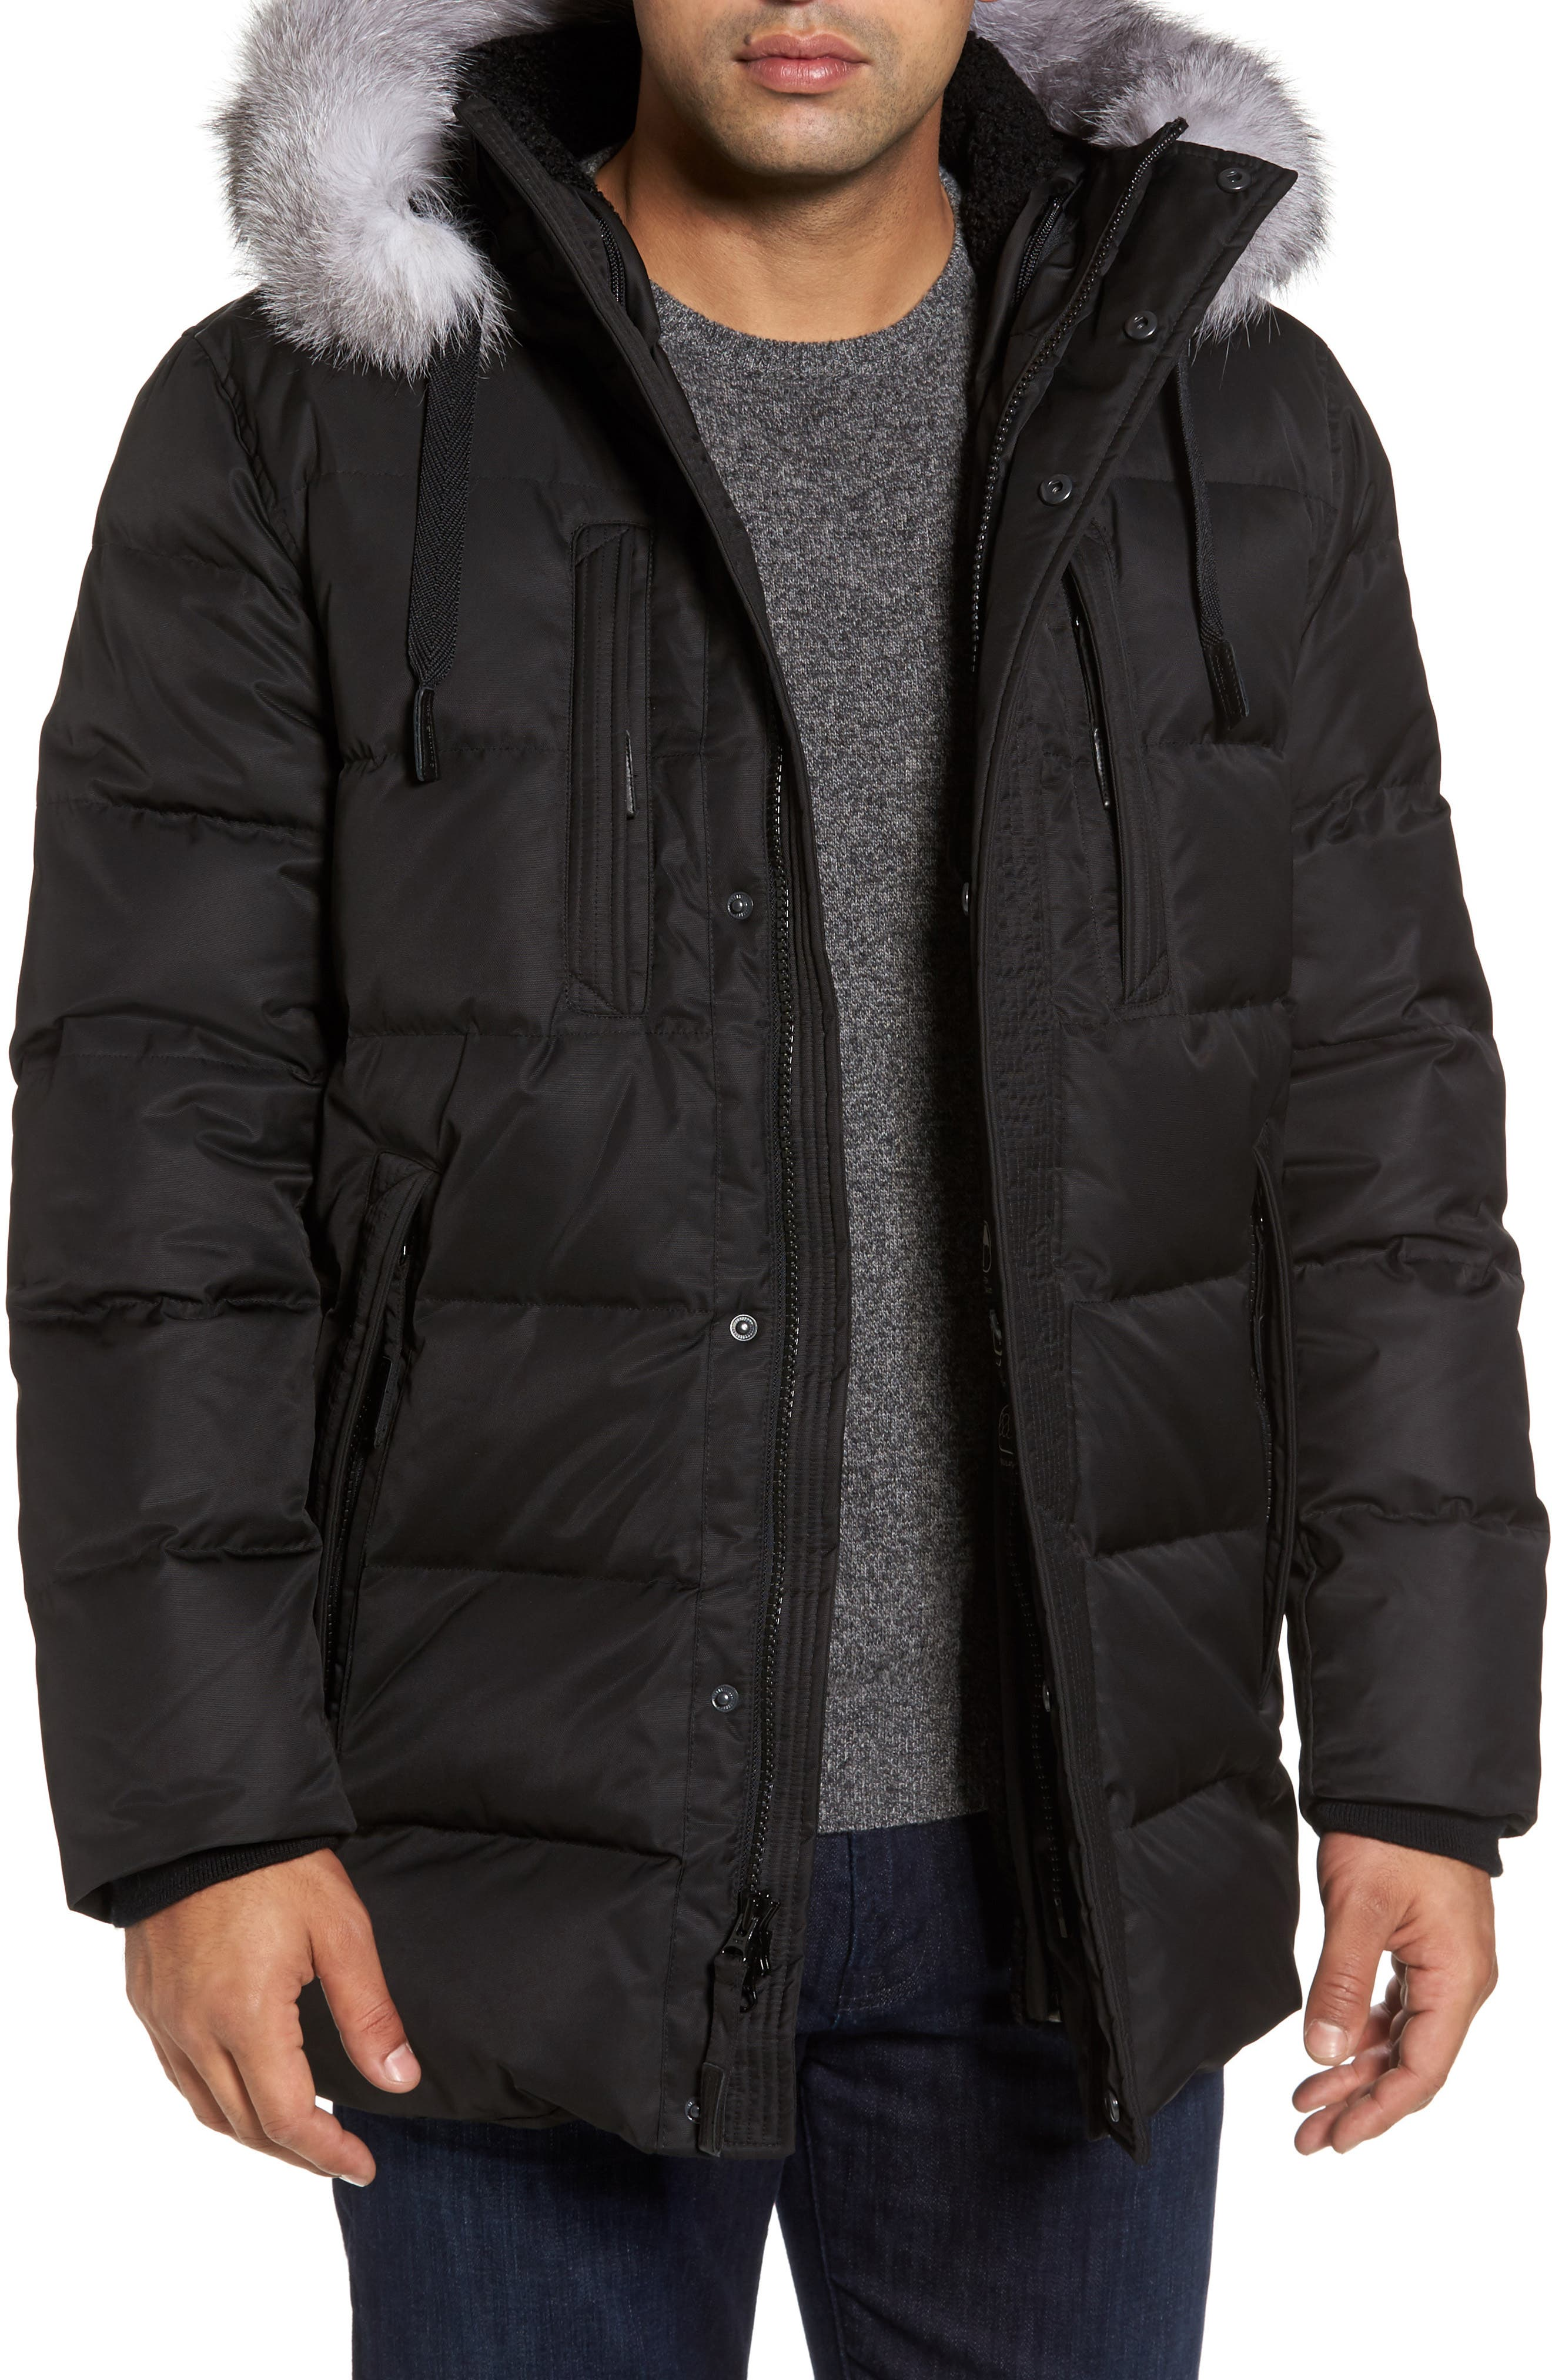 Main Image - Andrew Marc Quilted Down Jacket with Genuine Fox Fur Trim